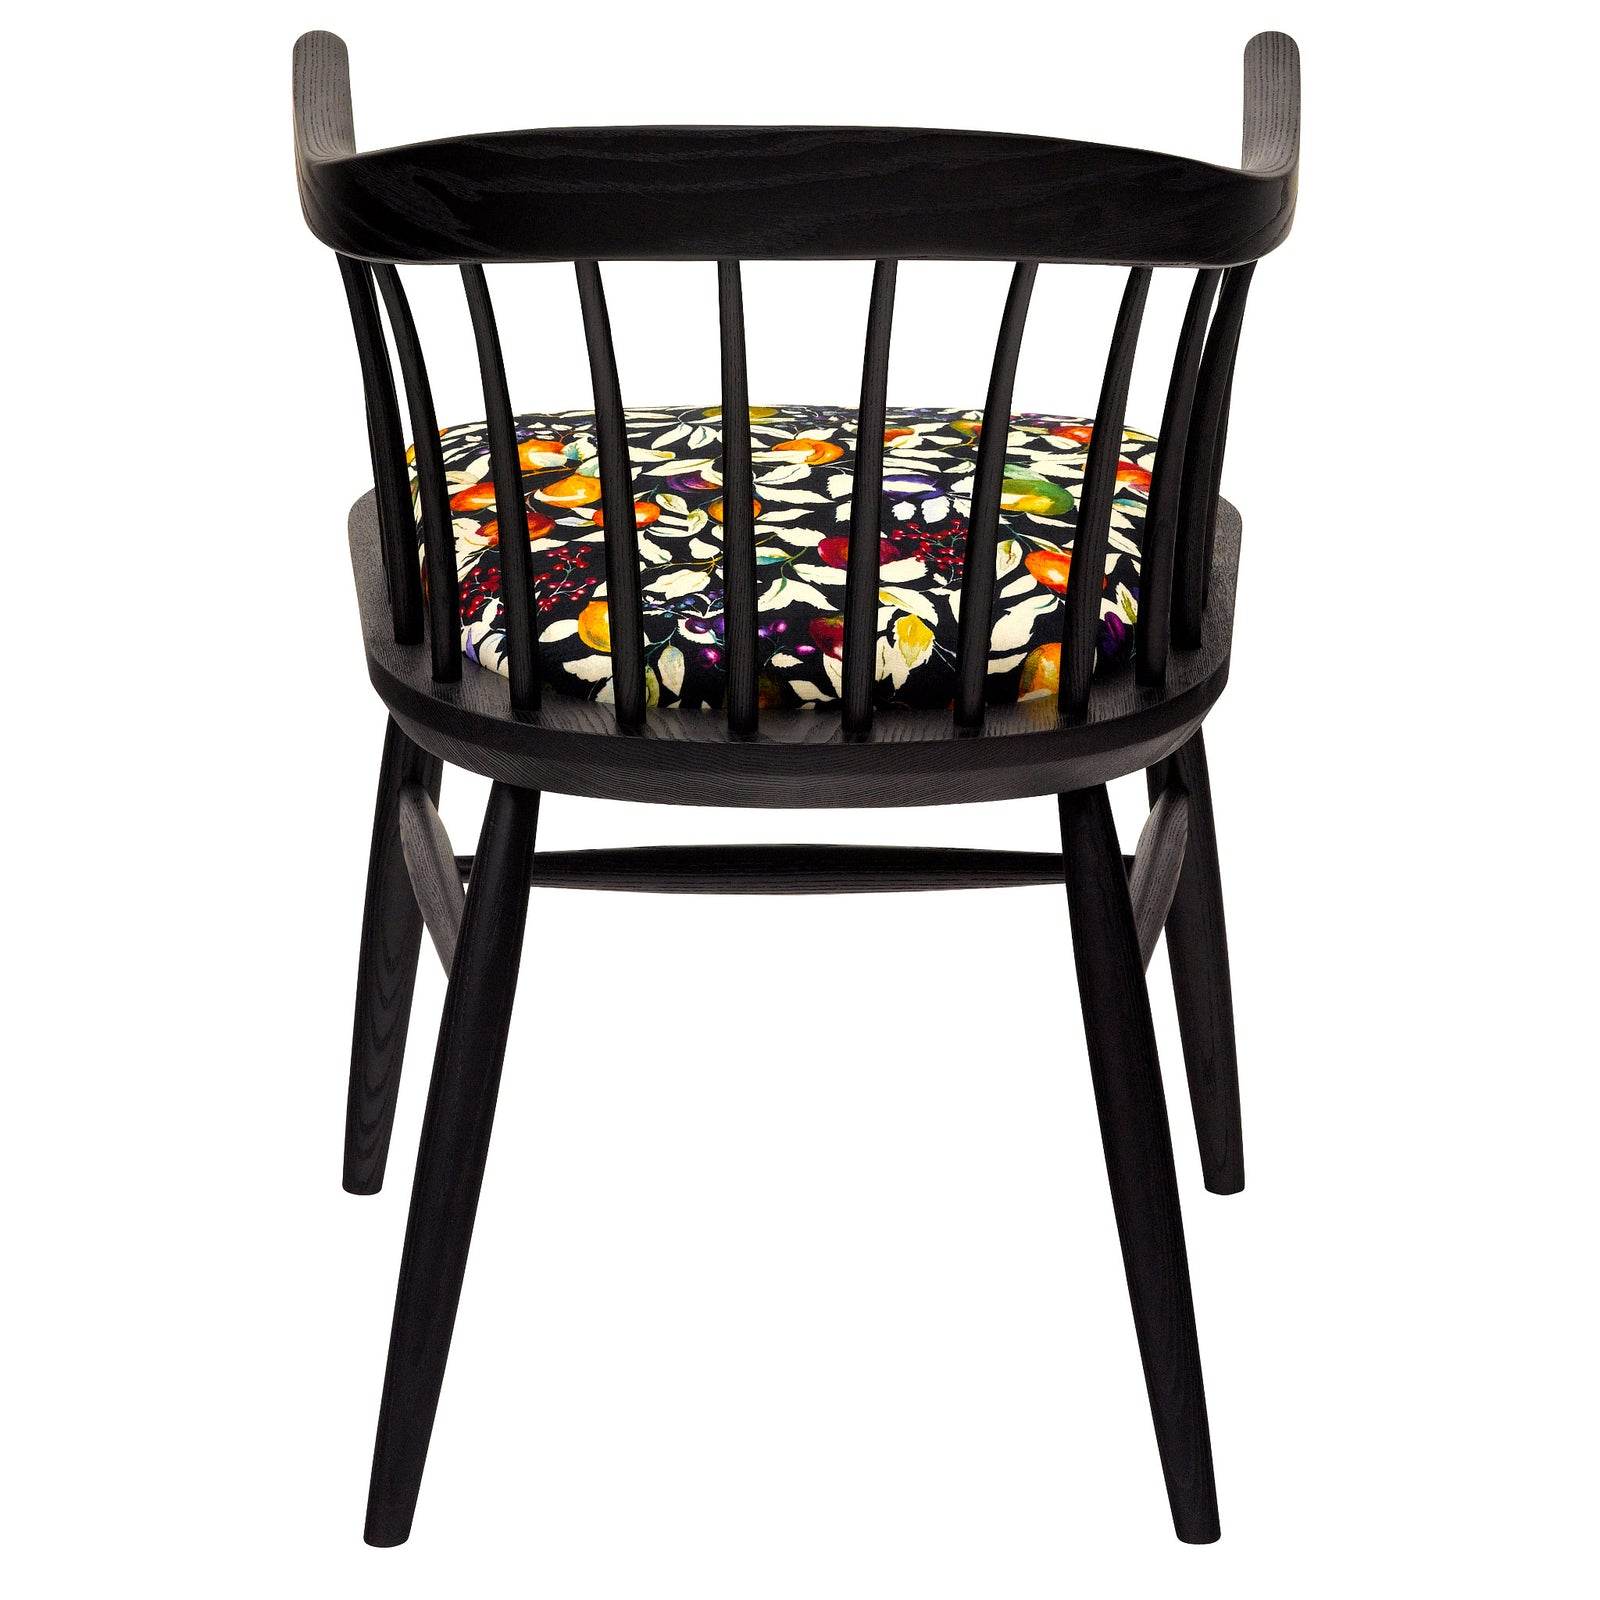 The Darwin Armchair Upholstered in Liberty London Fruit Billett Vintage Velvet with A Black Fainish